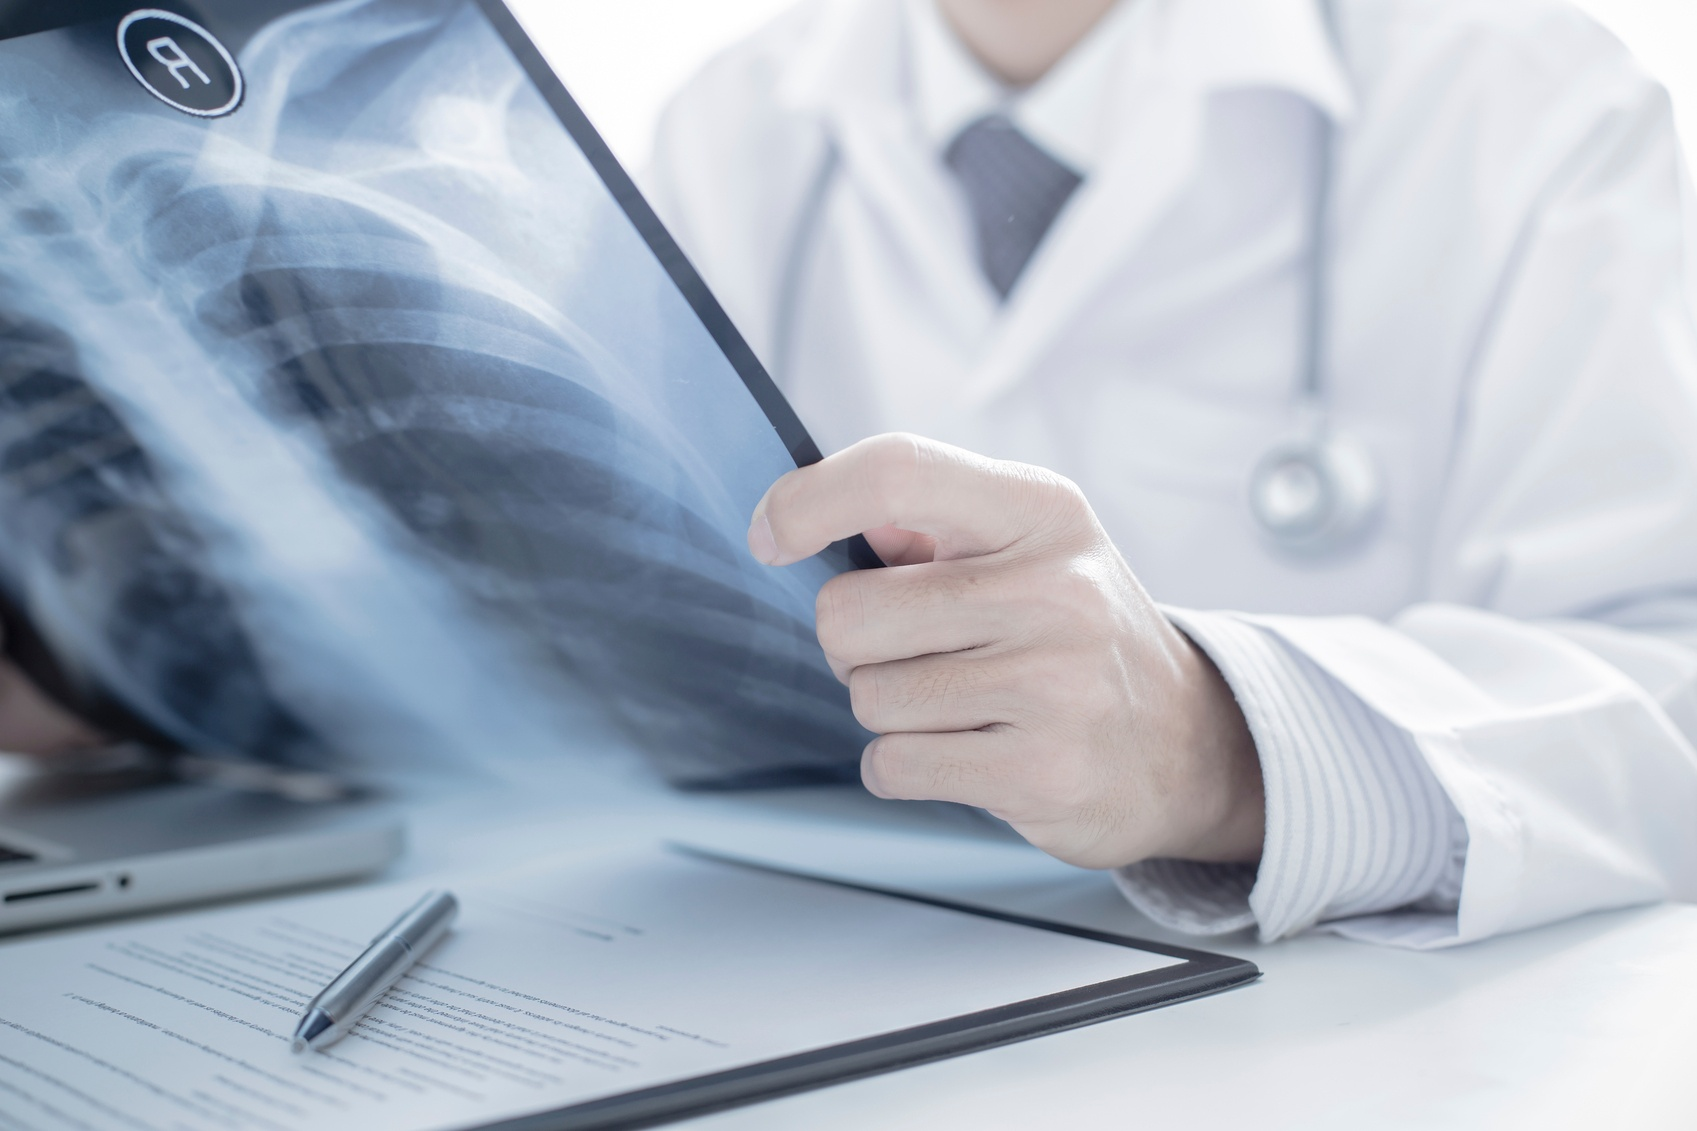 Need a doctor after an automobile accident injury